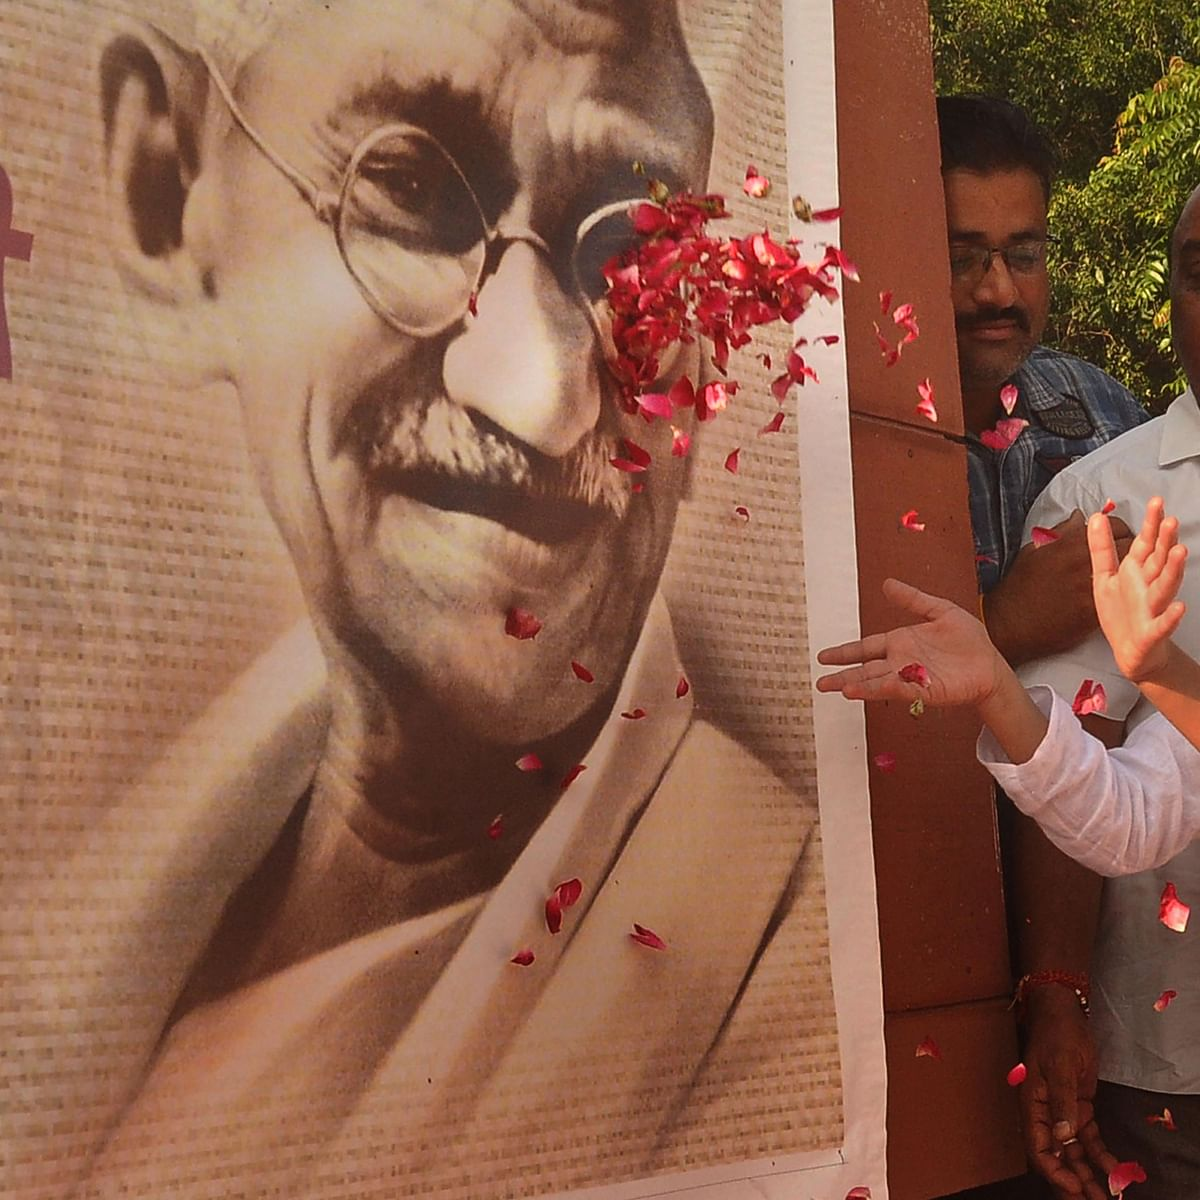 MP Government is all set to provide upto Rs 1.8 lakh fellowship for research on Mahatma Gandhi